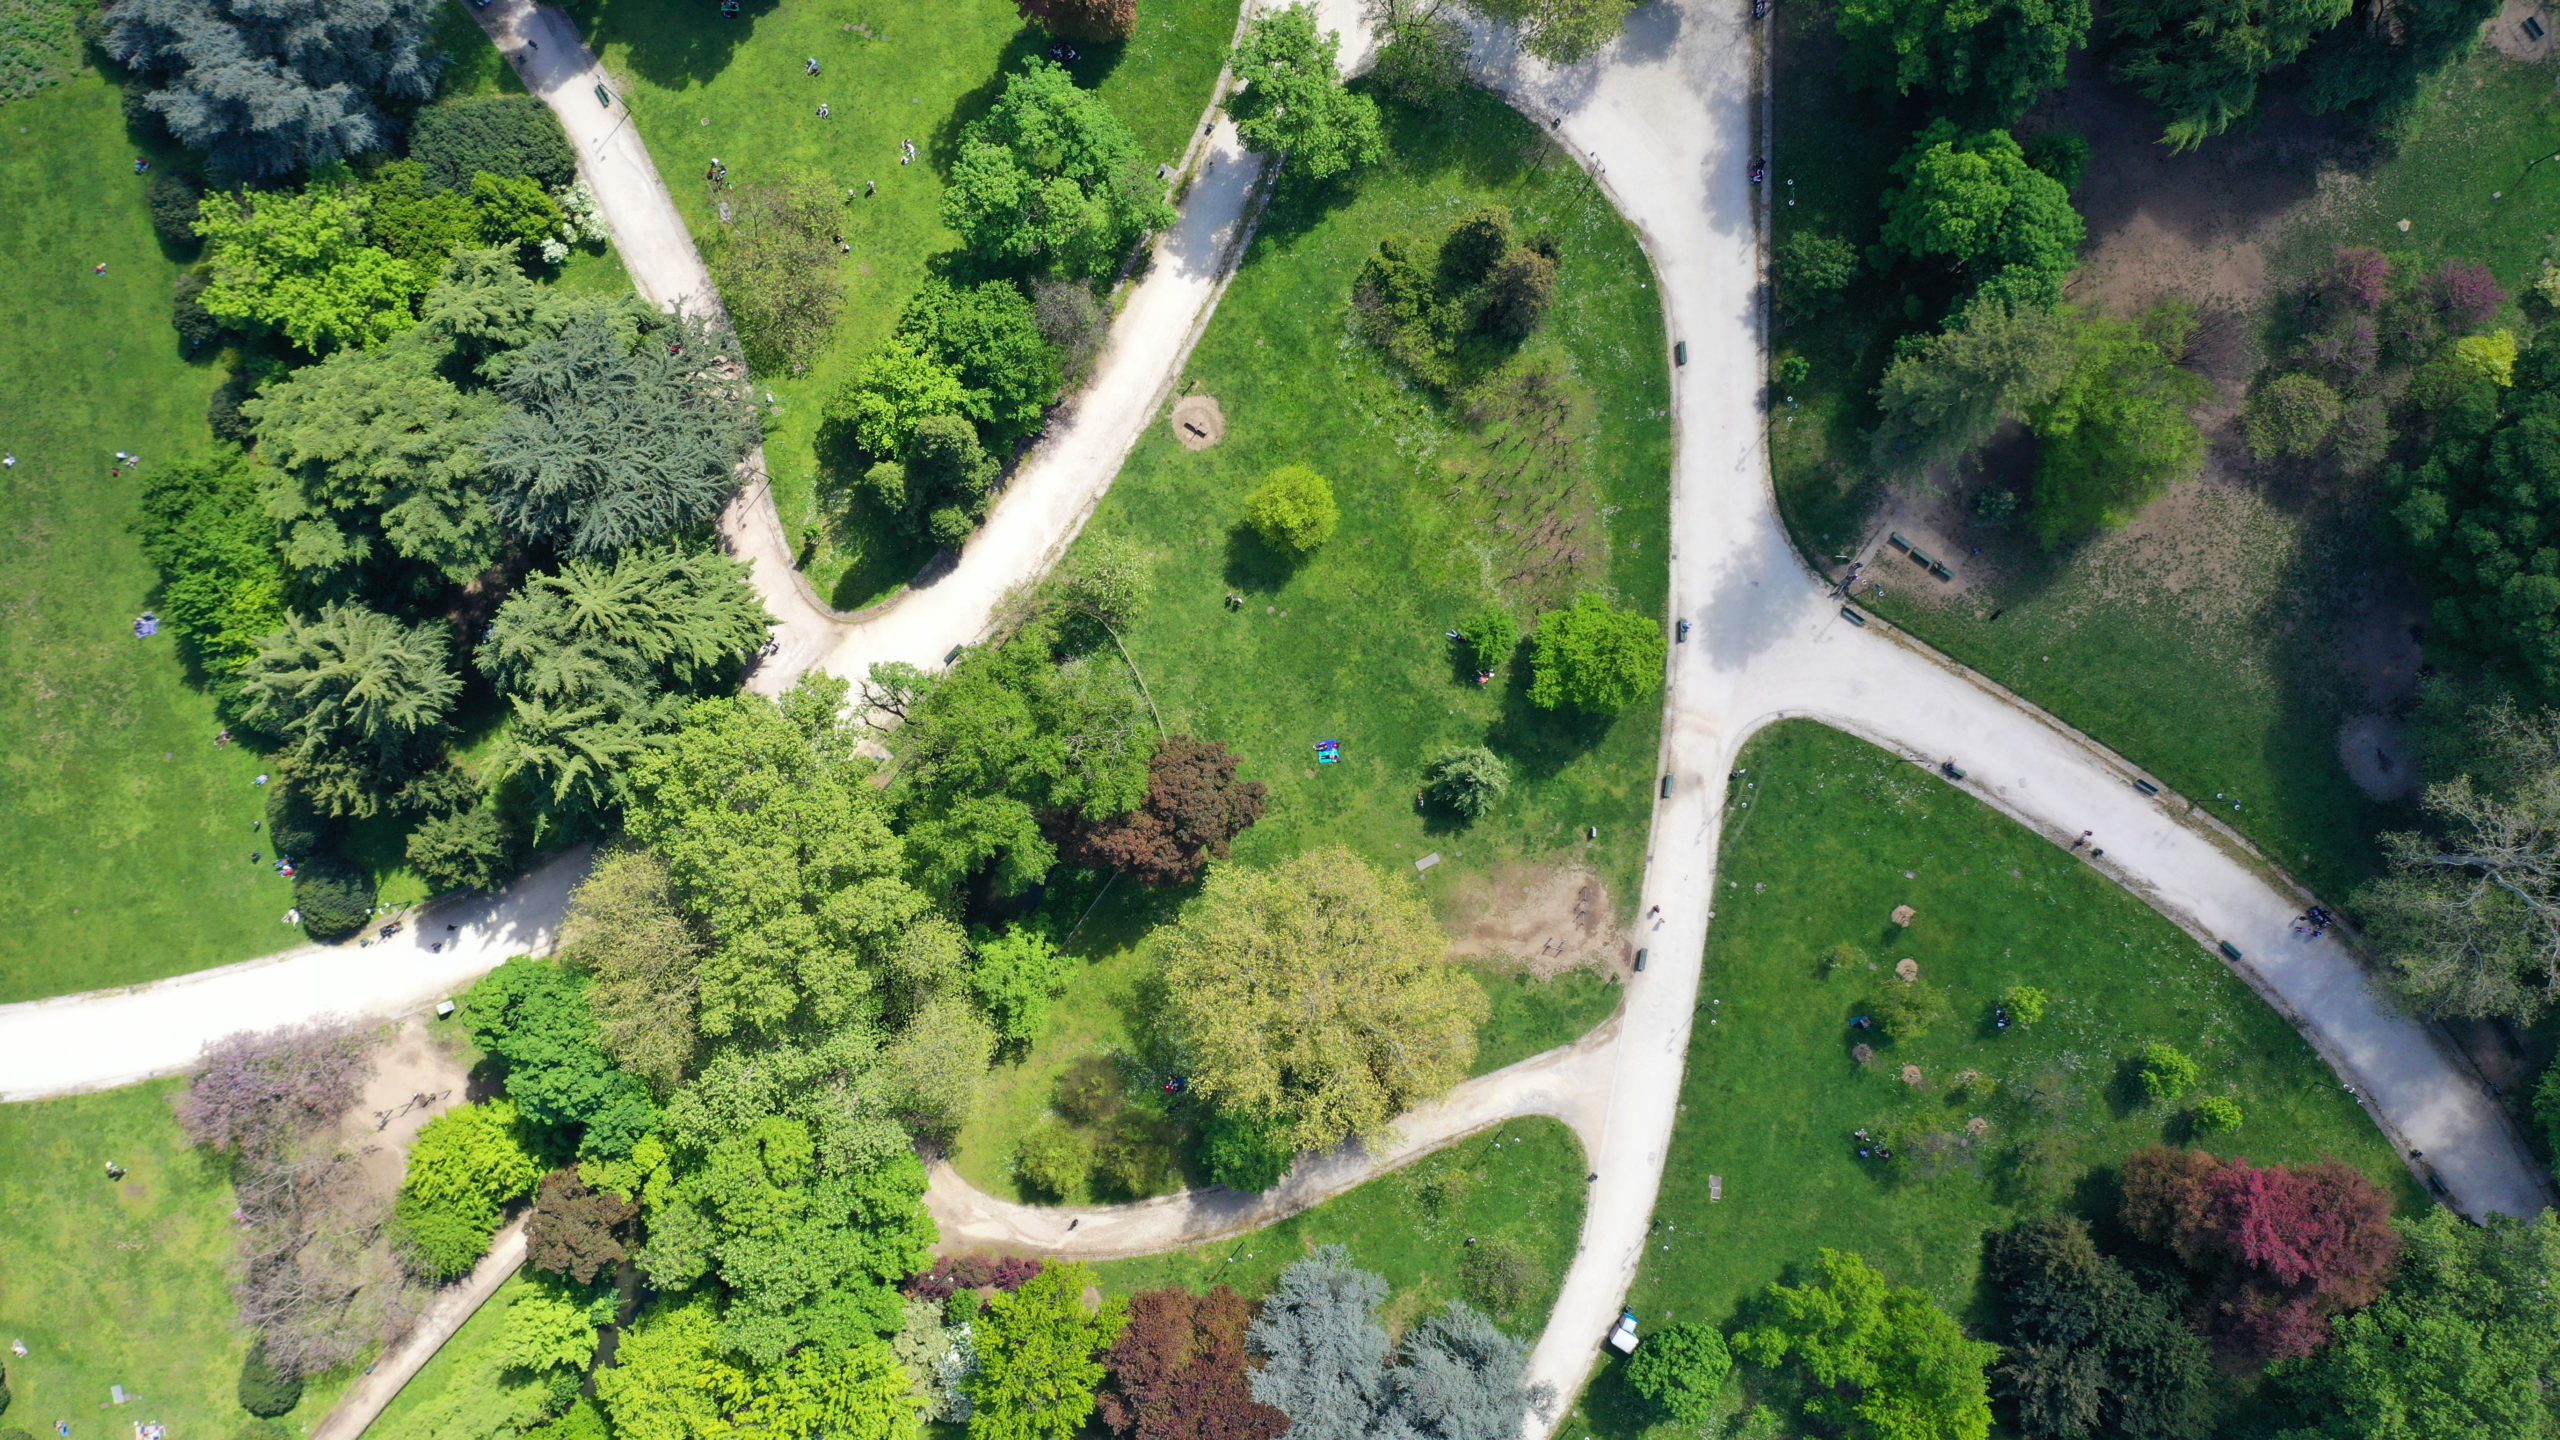 View of a park from above